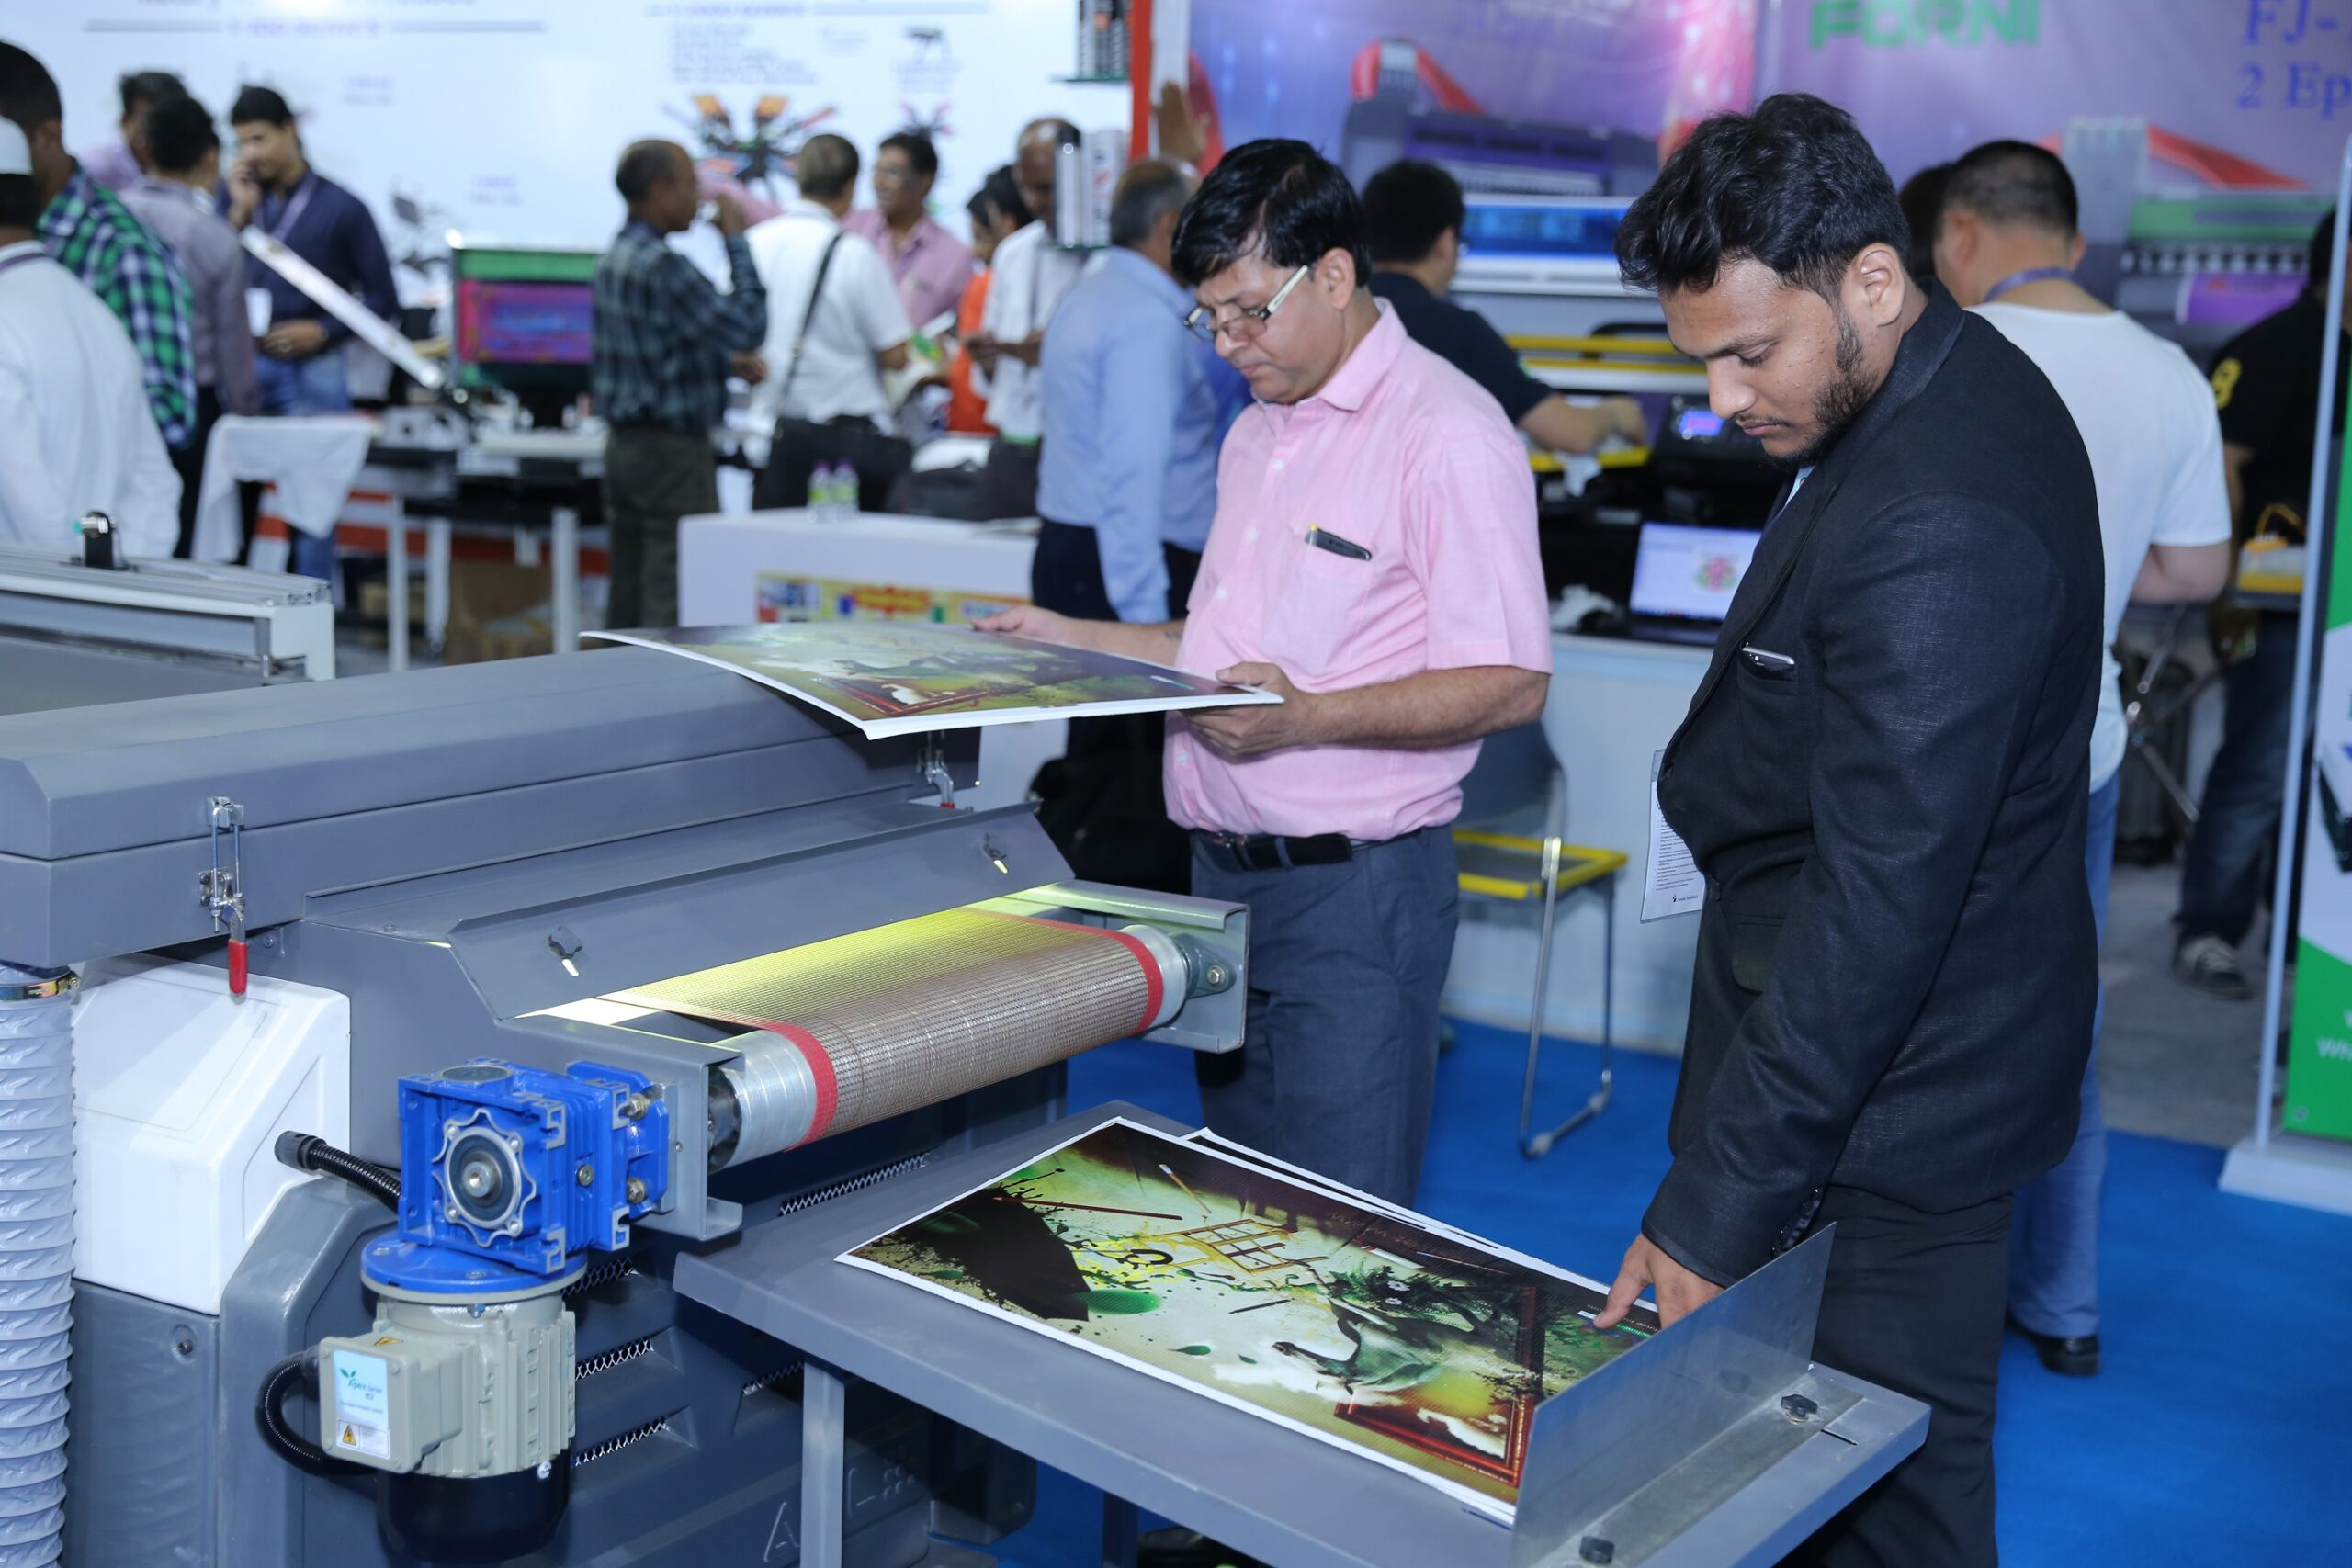 Mumbai editions of Gartex Texprocess India and Screen Print India pushed ahead due to venue inaccessibility in March.